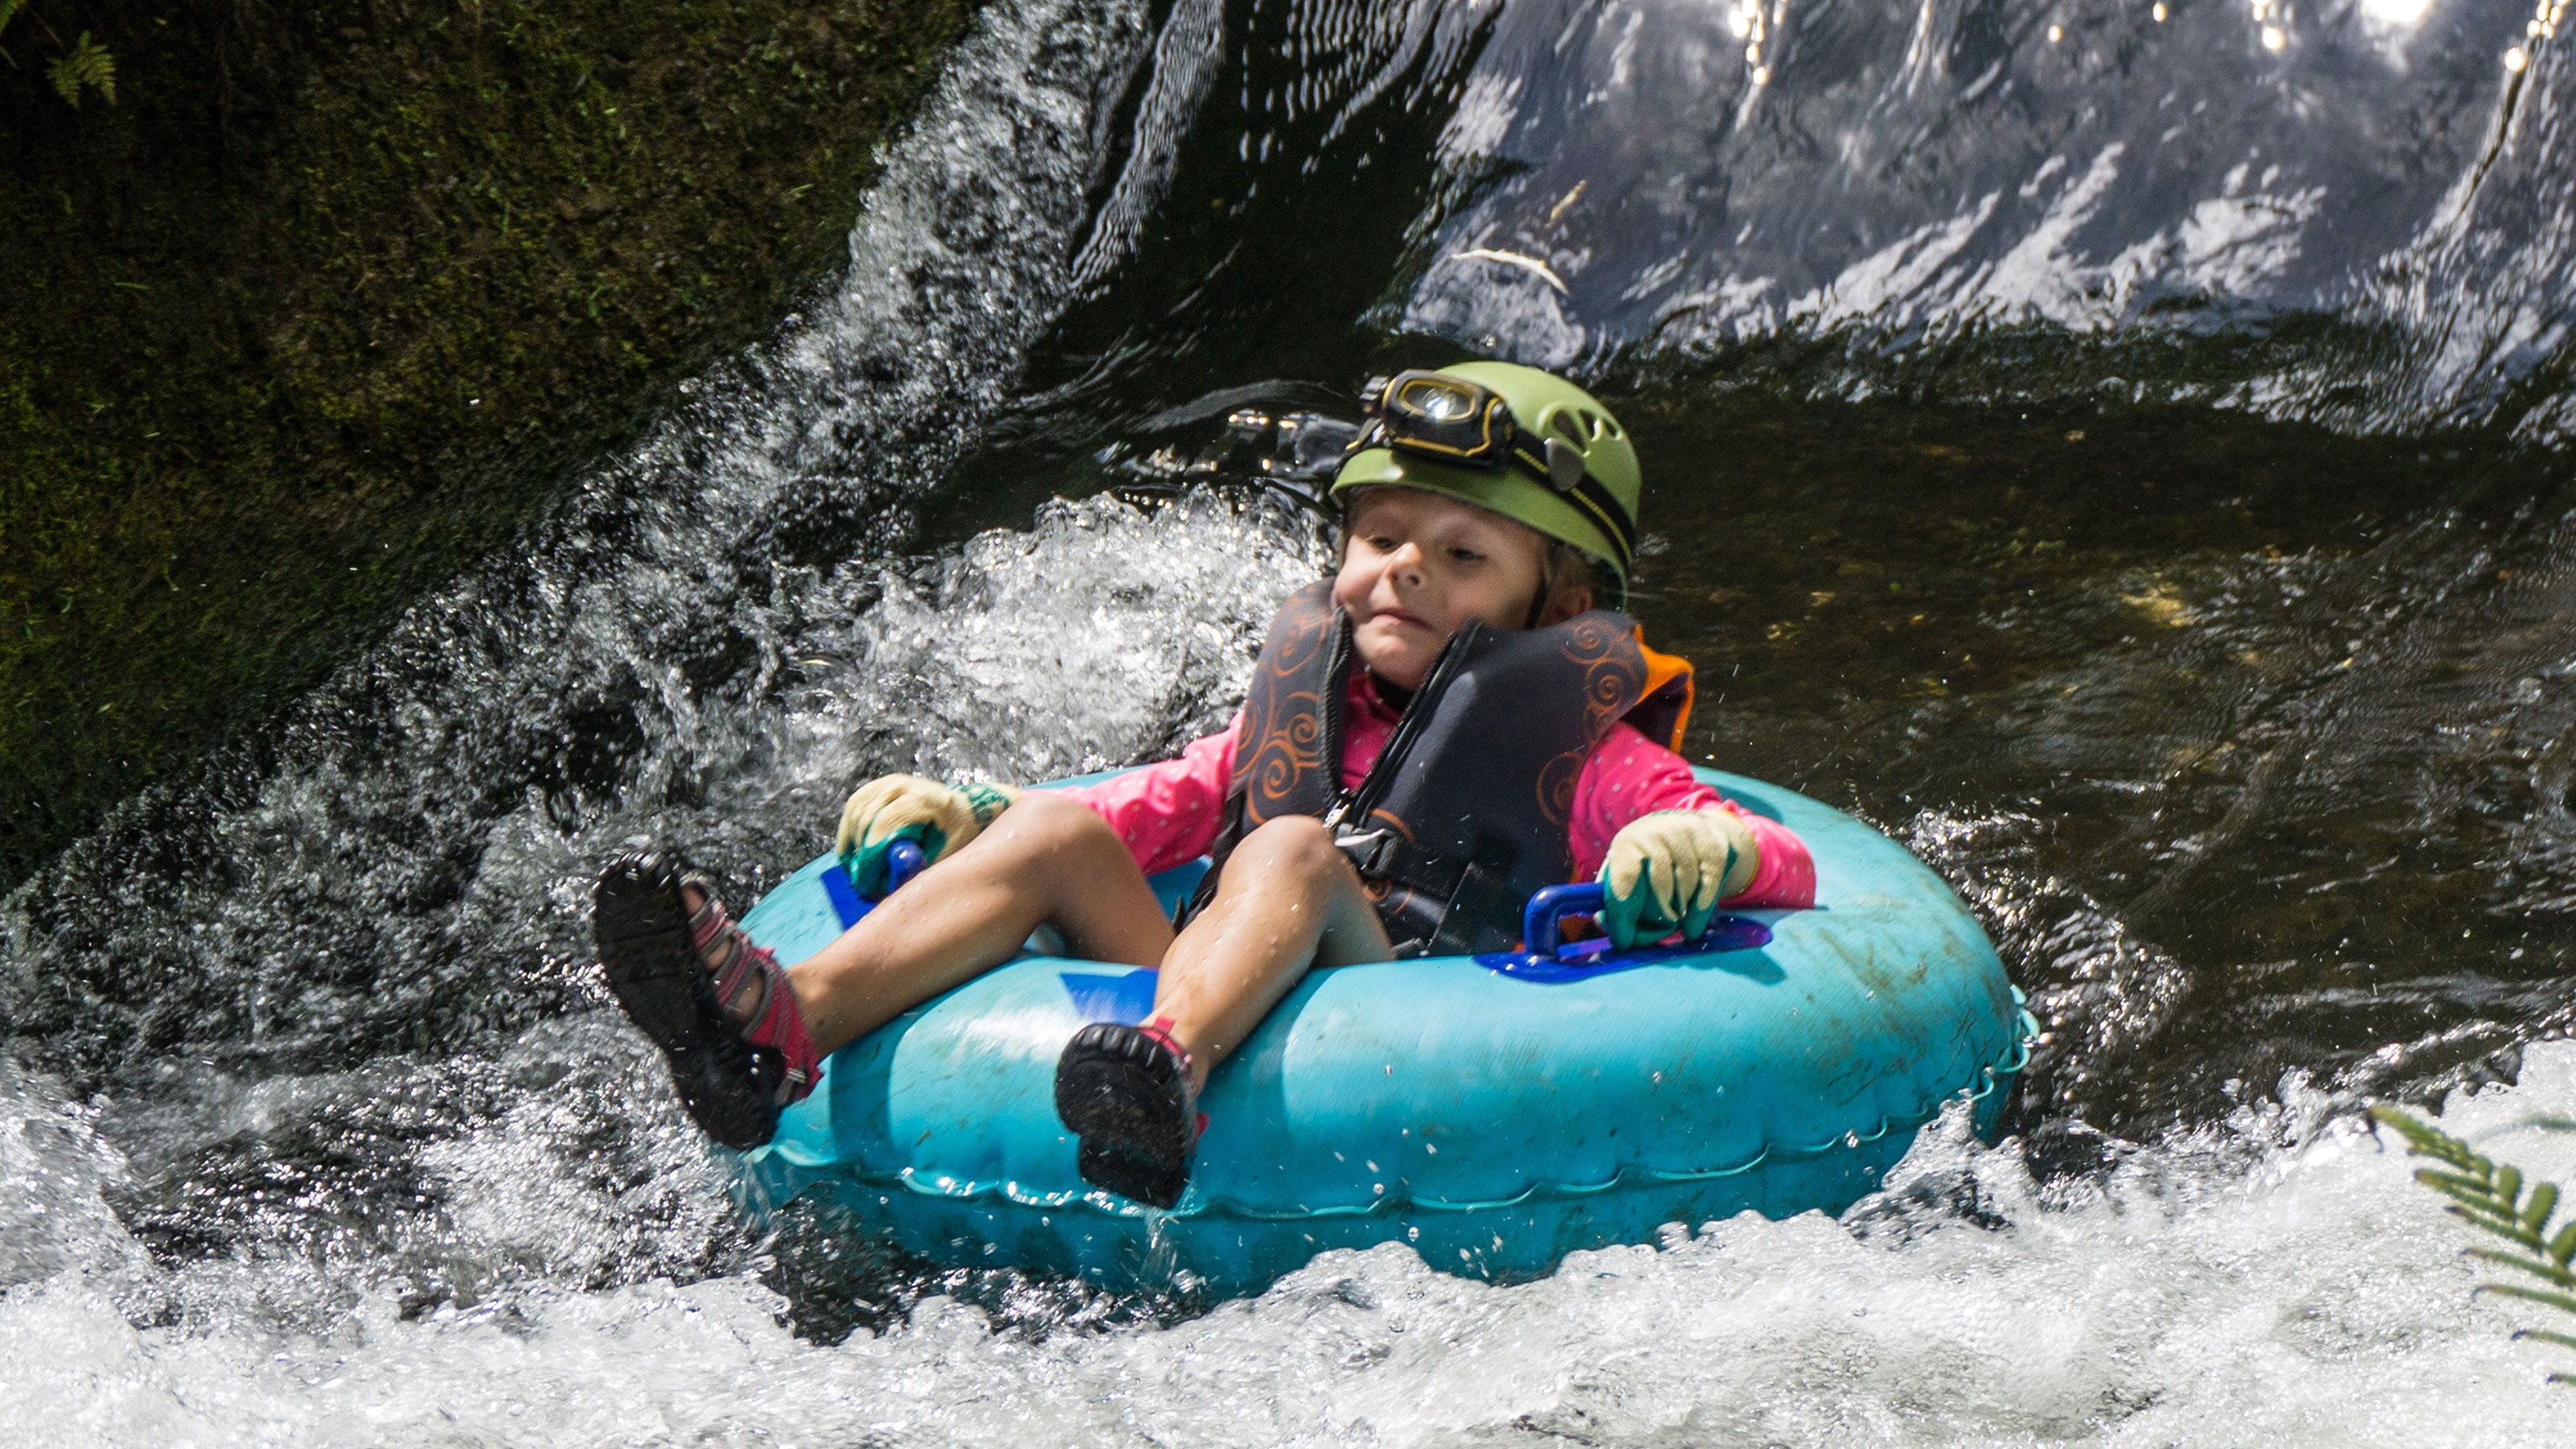 young girl riding in a tube on river in Kauai